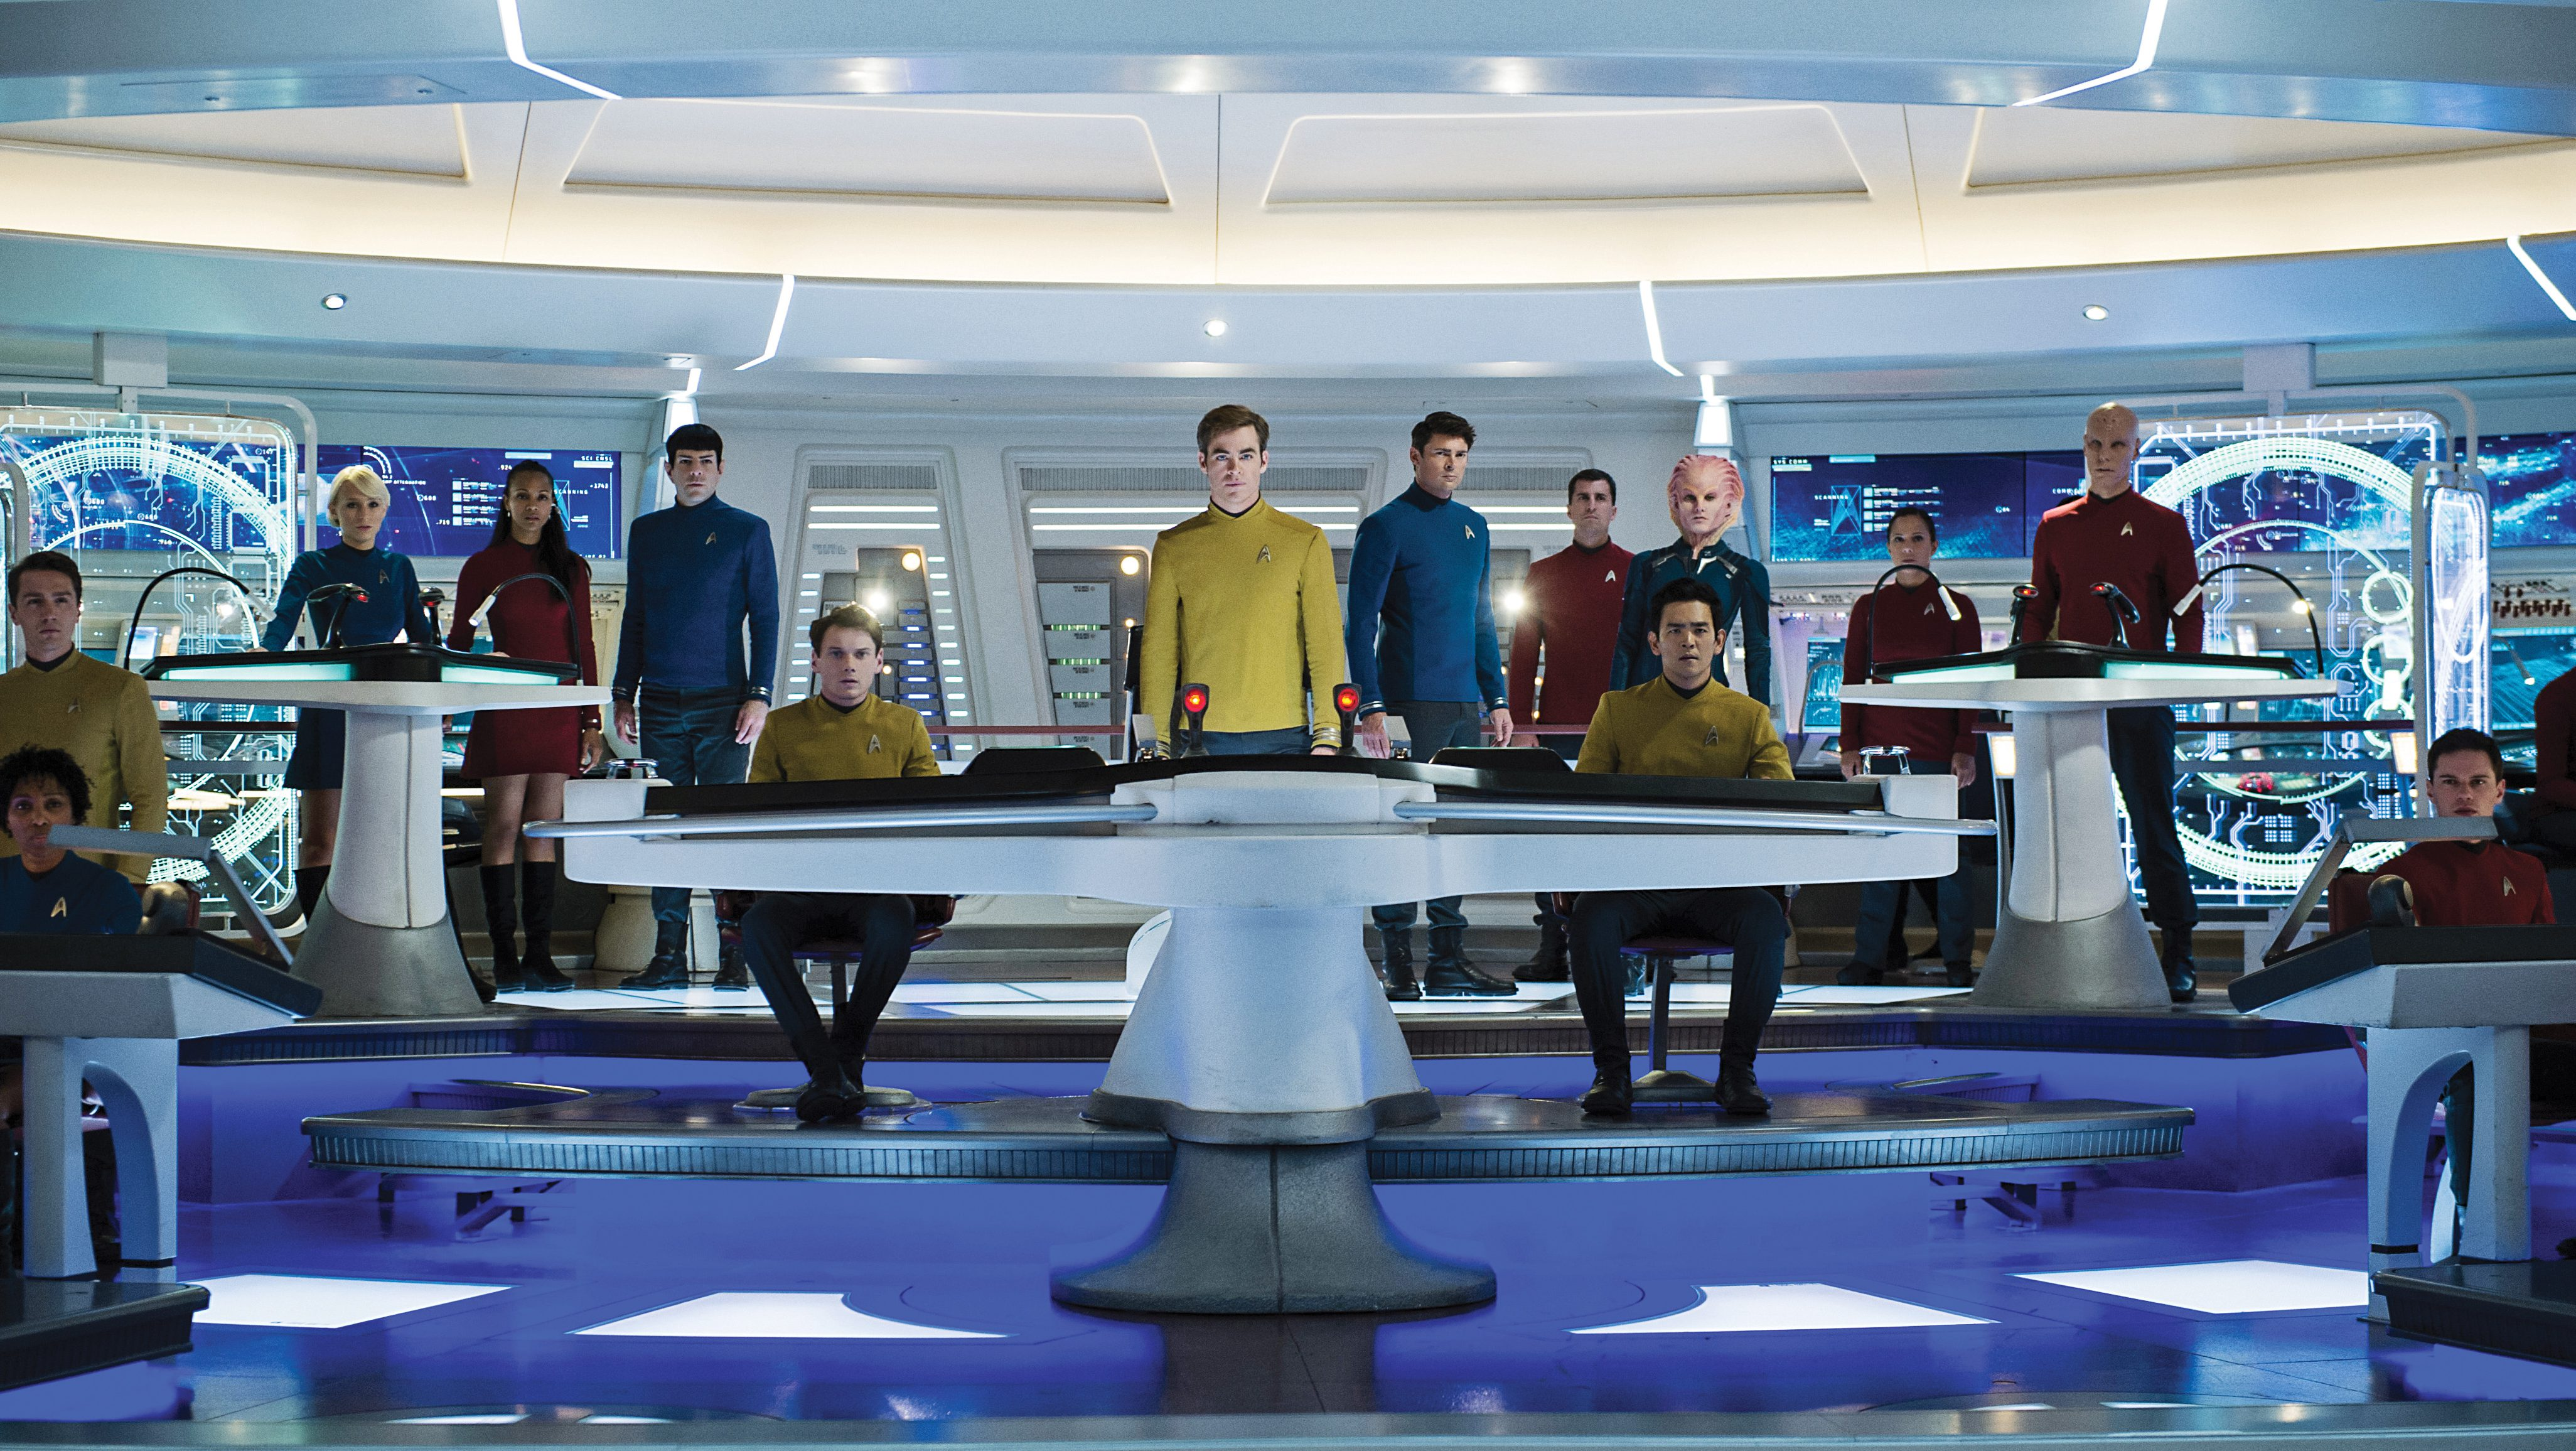 Left to right: Polina Nikolai plays USSE Bridge Crew, Zoe Saldana plays Lieutenant Uhura, Zachary Quinto as Commander Spock, Anton Yelchin as Chekov, Chris Pine as Captain James T. Kirk, Karl Urban plays Doctor 'Bones' Mccoy, John Cho plays Sulu, Lydia Wilson plays Kalara and Christian Sloan plays Jae in Star Trek Beyond from Paramount Pictures, Skydance, Bad Robot, Sneaky Shark and Perfect Storm Entertainment